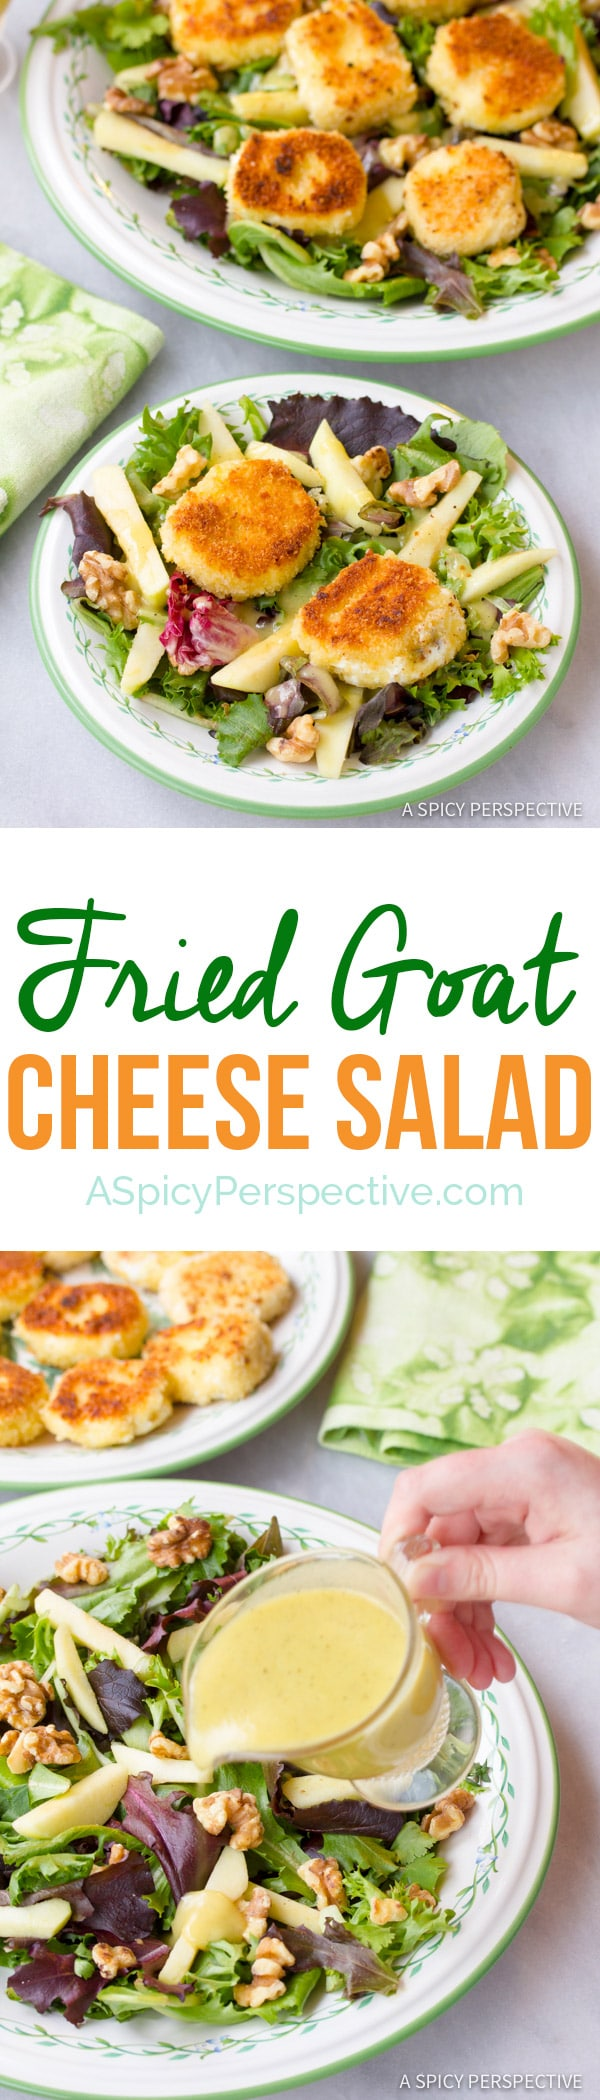 ... Goat Cheese Salad with apples, walnuts, and a creamy apple vinaigrette